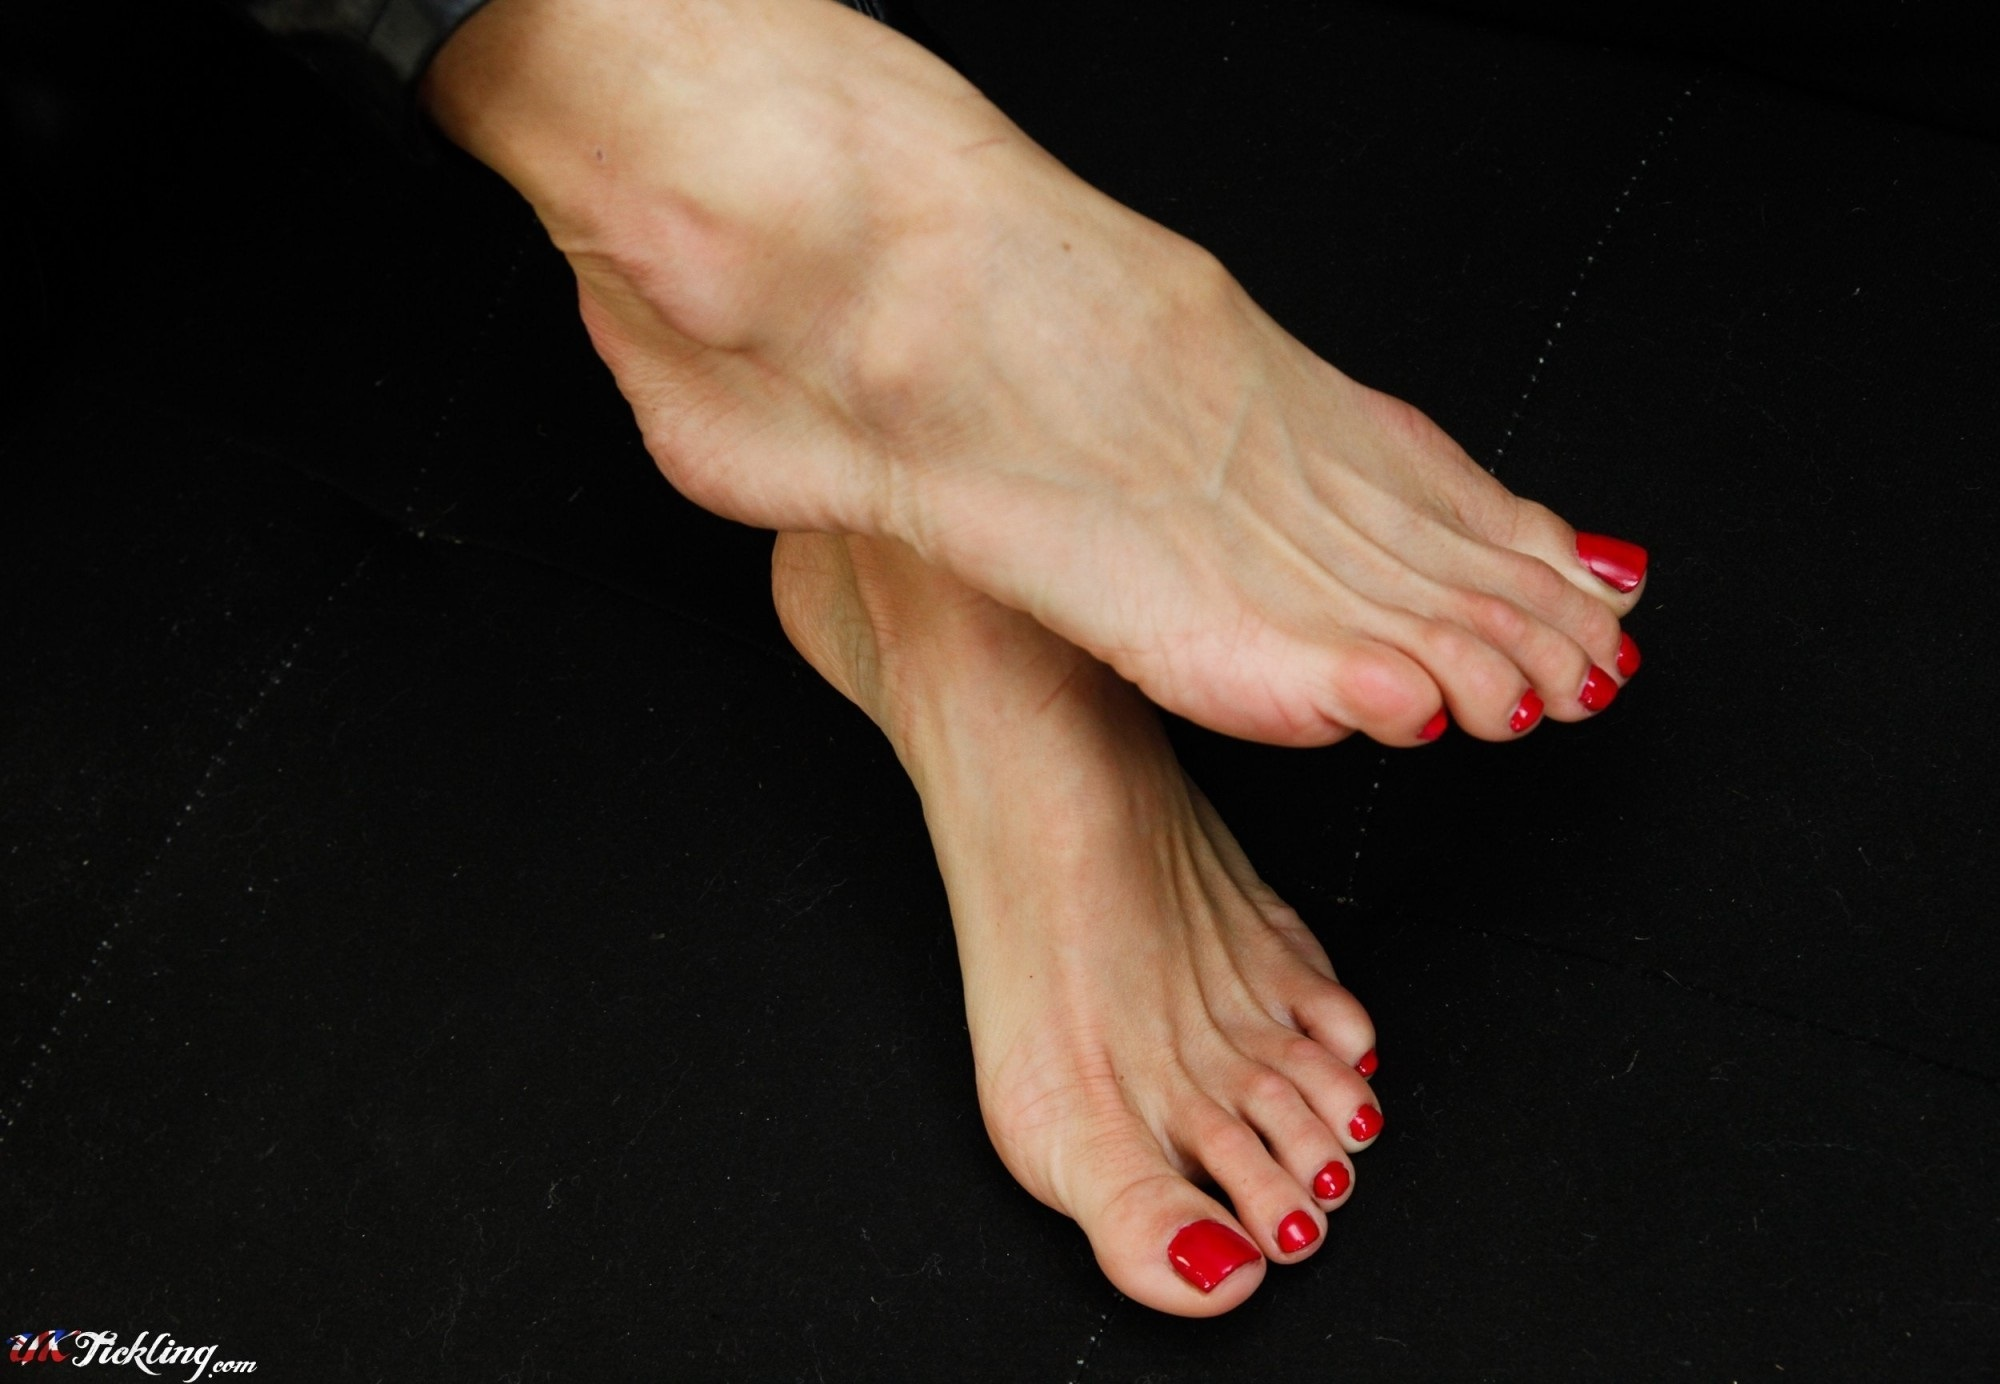 dannii harwood feet